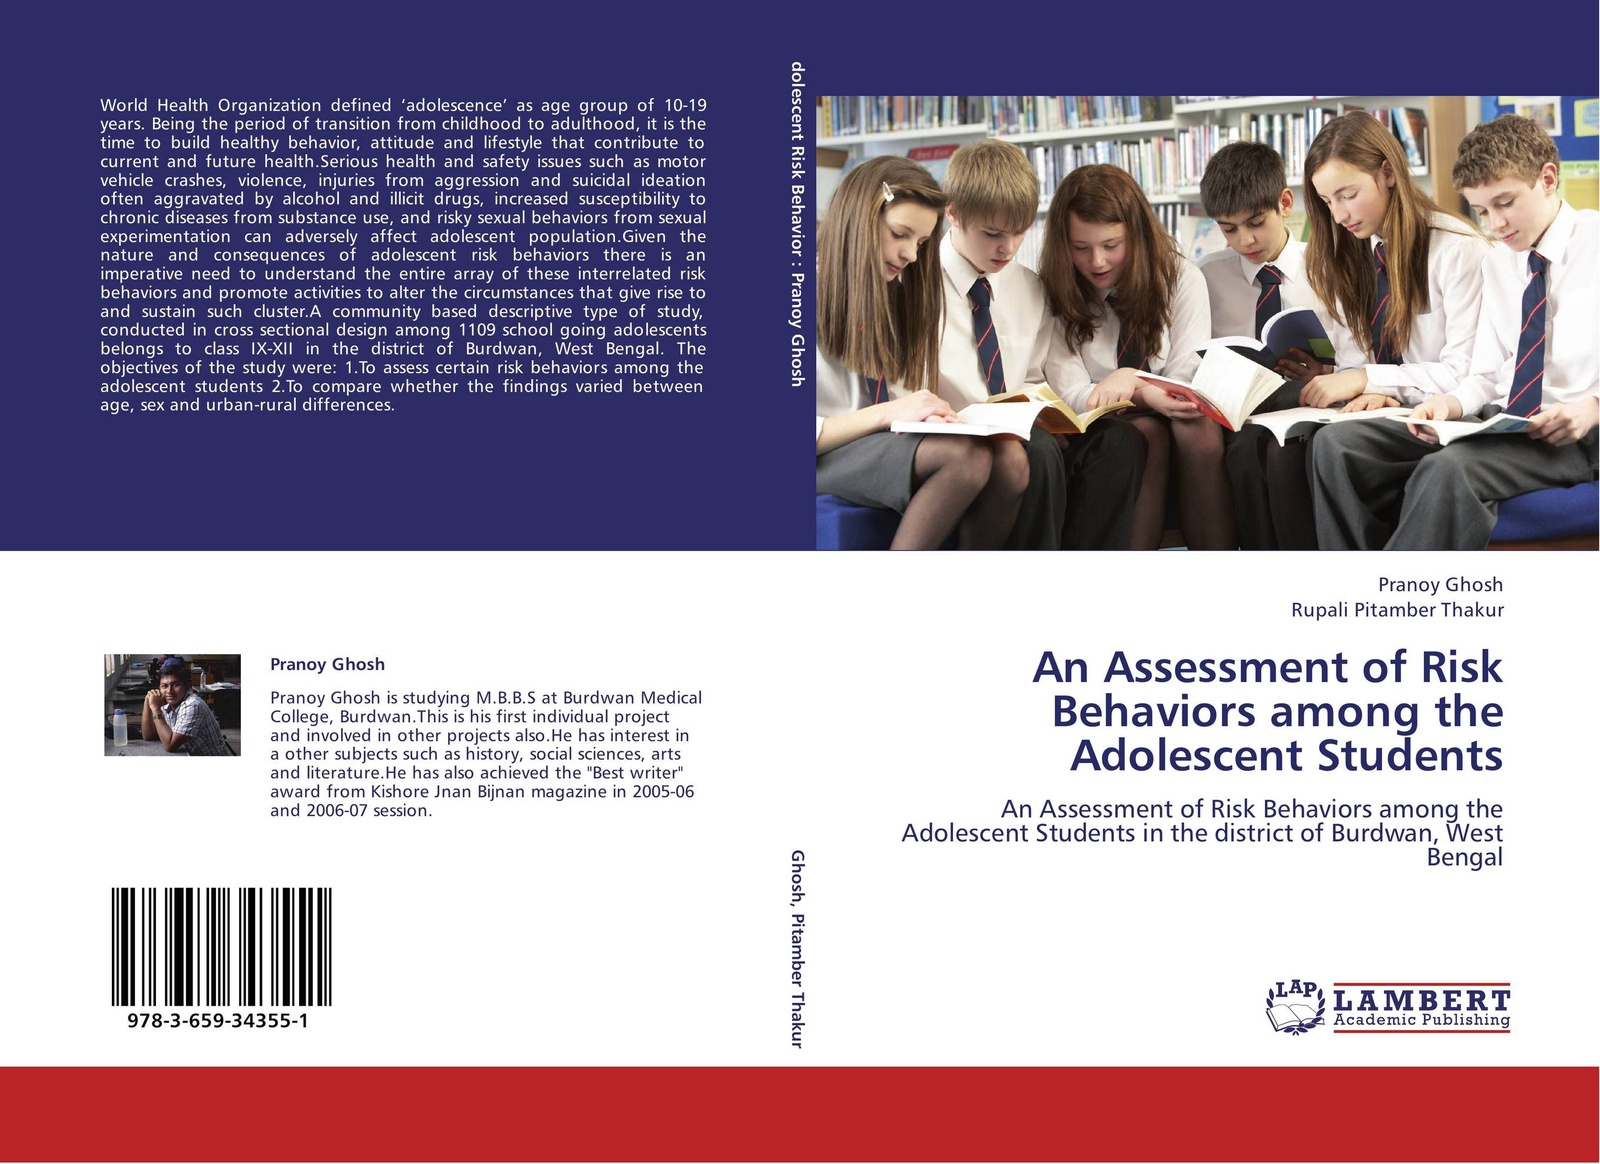 Pranoy Ghosh and Rupali Pitamber Thakur An Assessment of Risk Behaviors among the Adolescent Students все цены